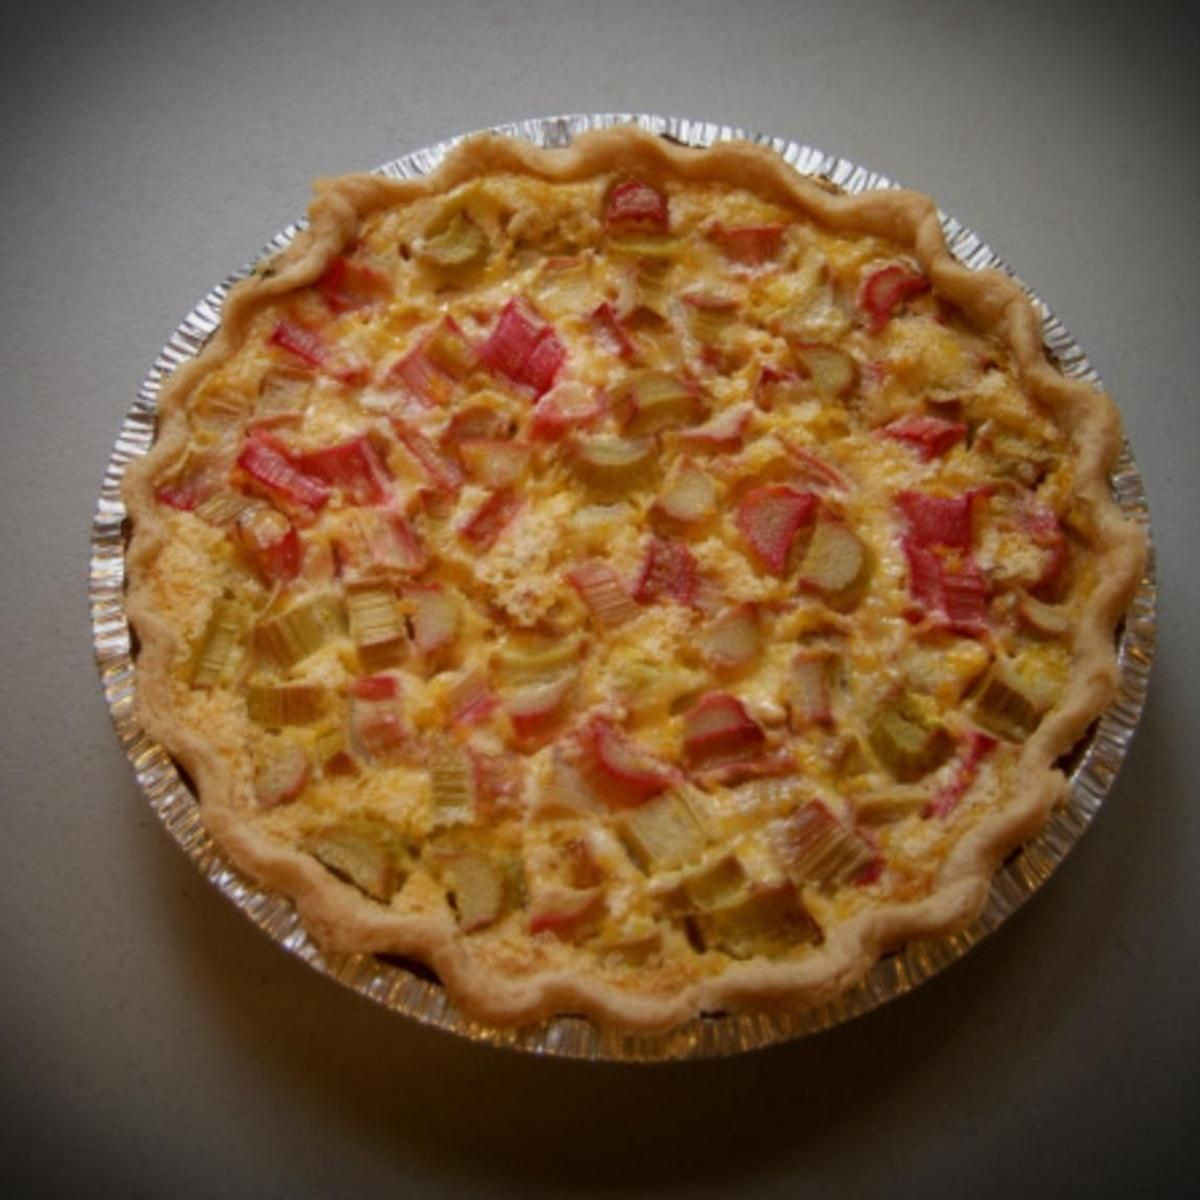 Rhubarb Custard Pie #sweetpie